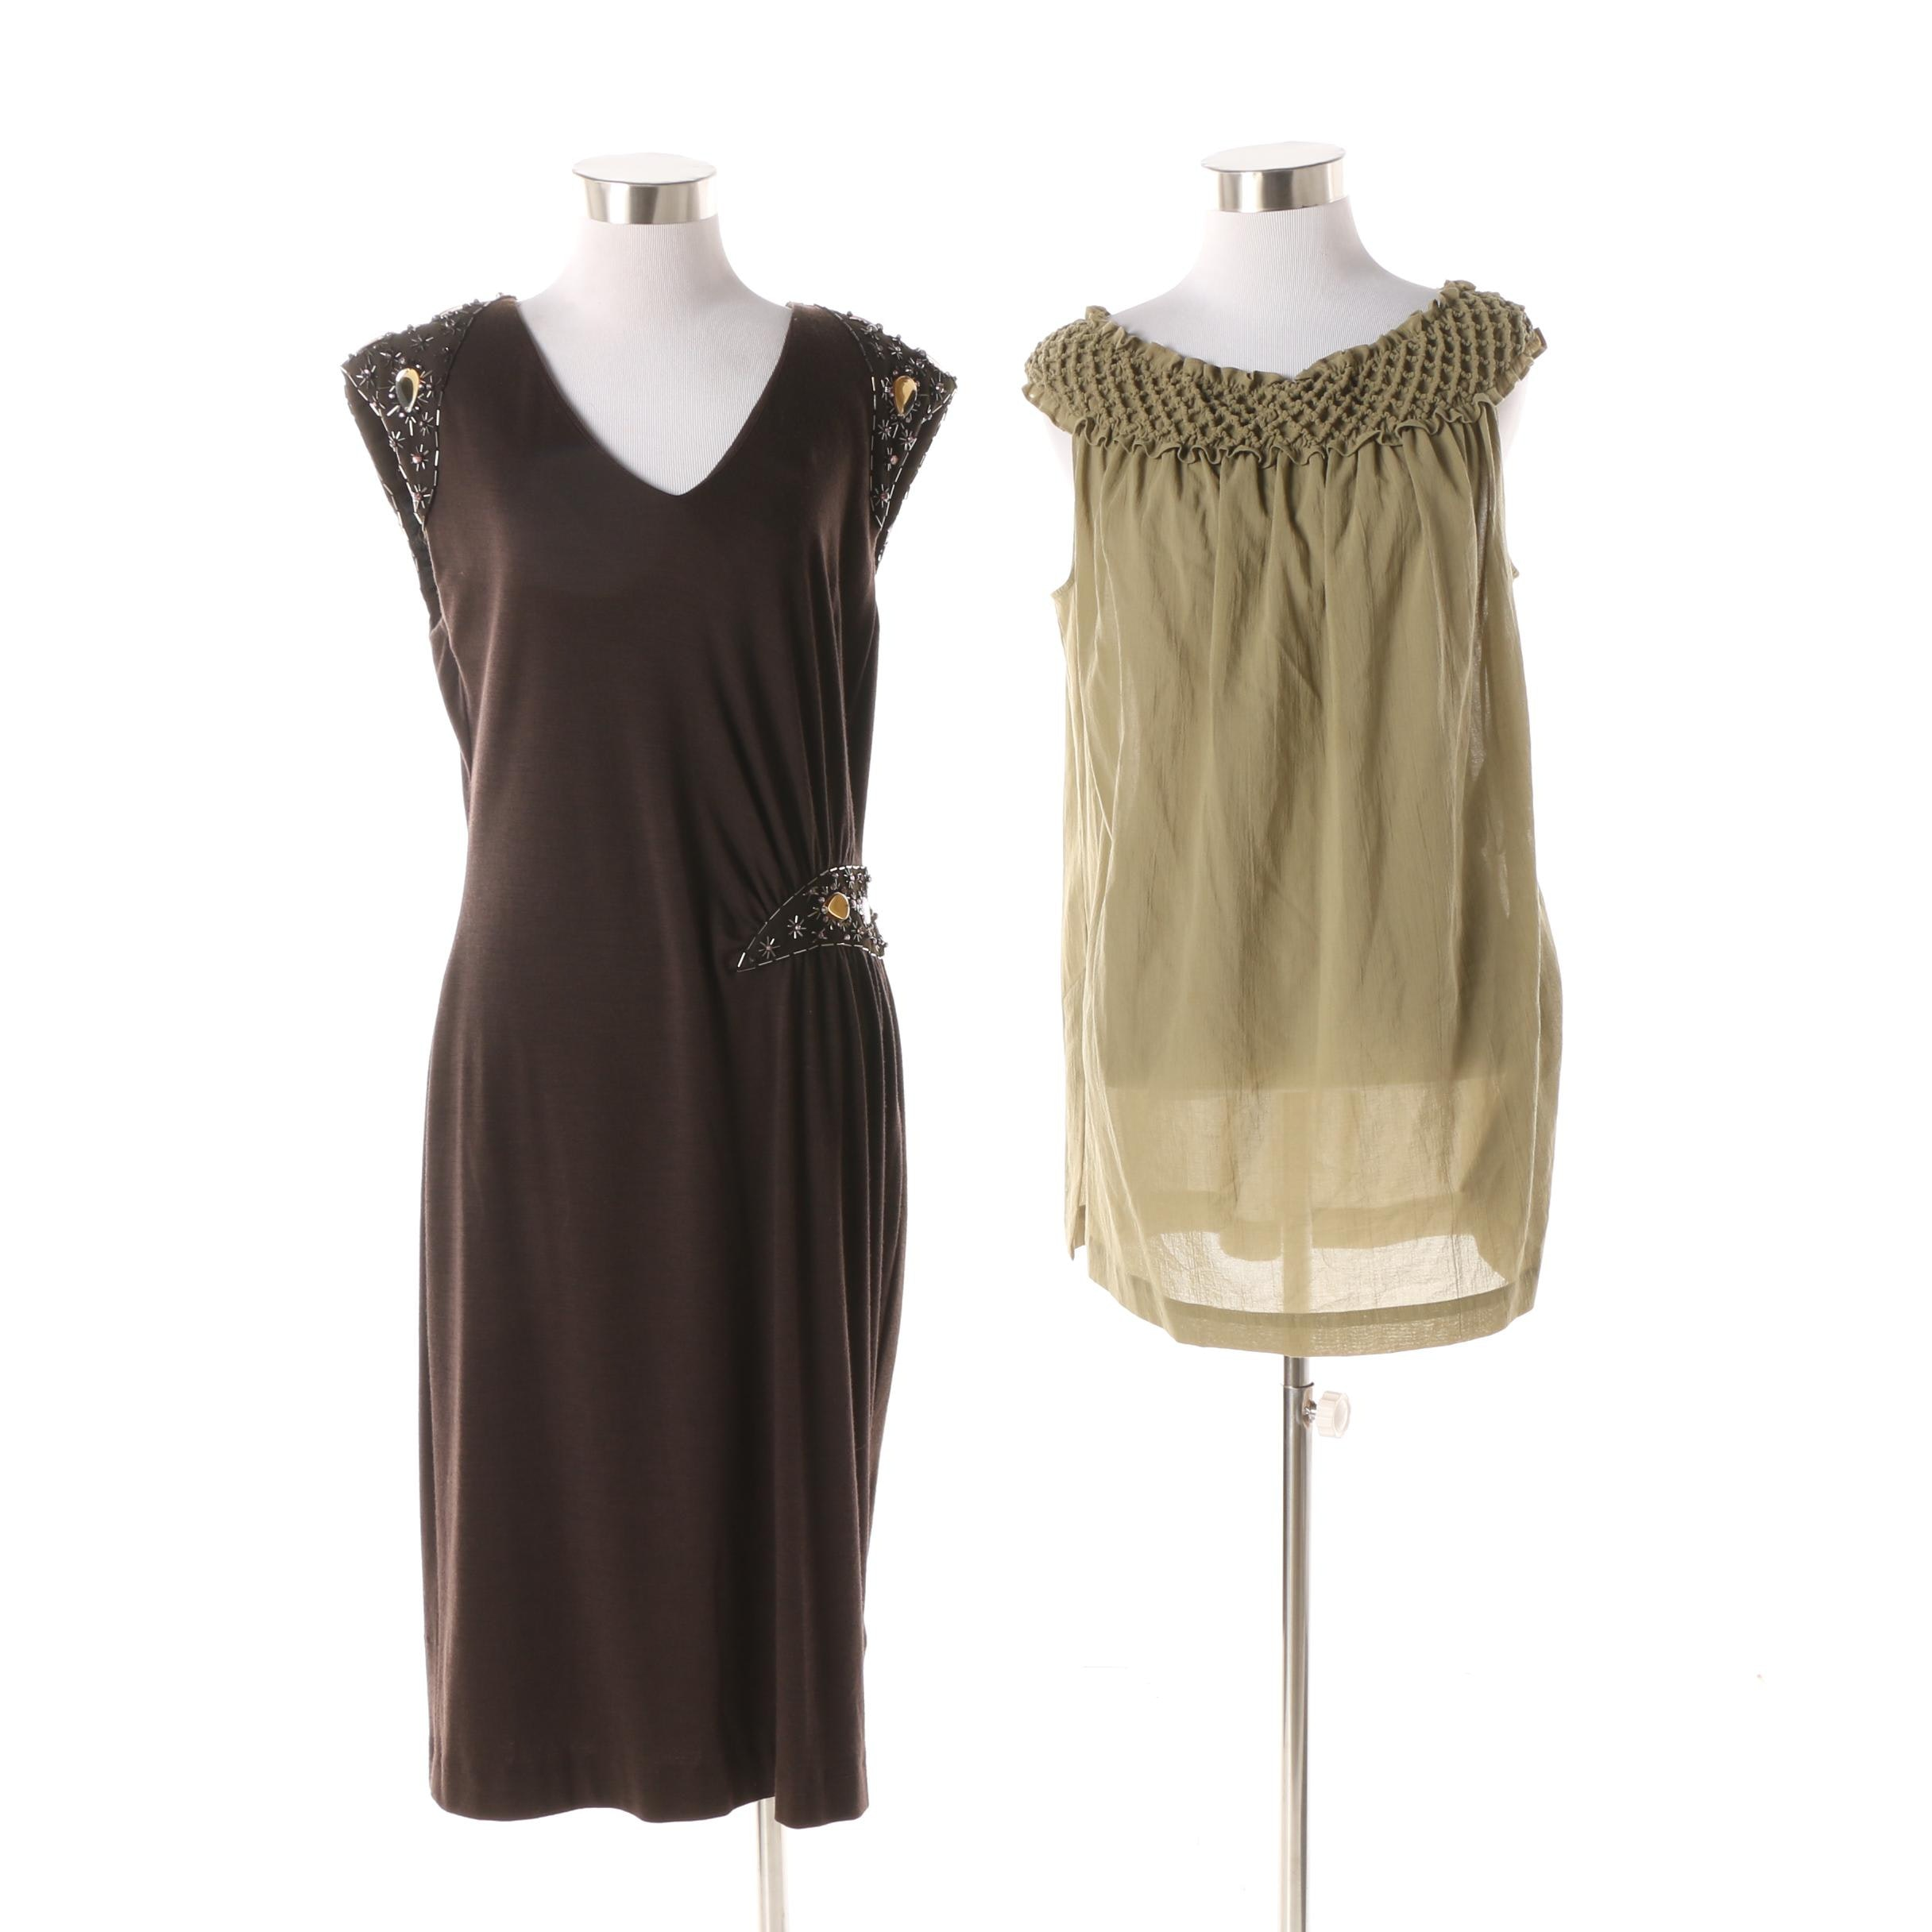 Escada Beaded Sleeveless Dress and Tunic Top